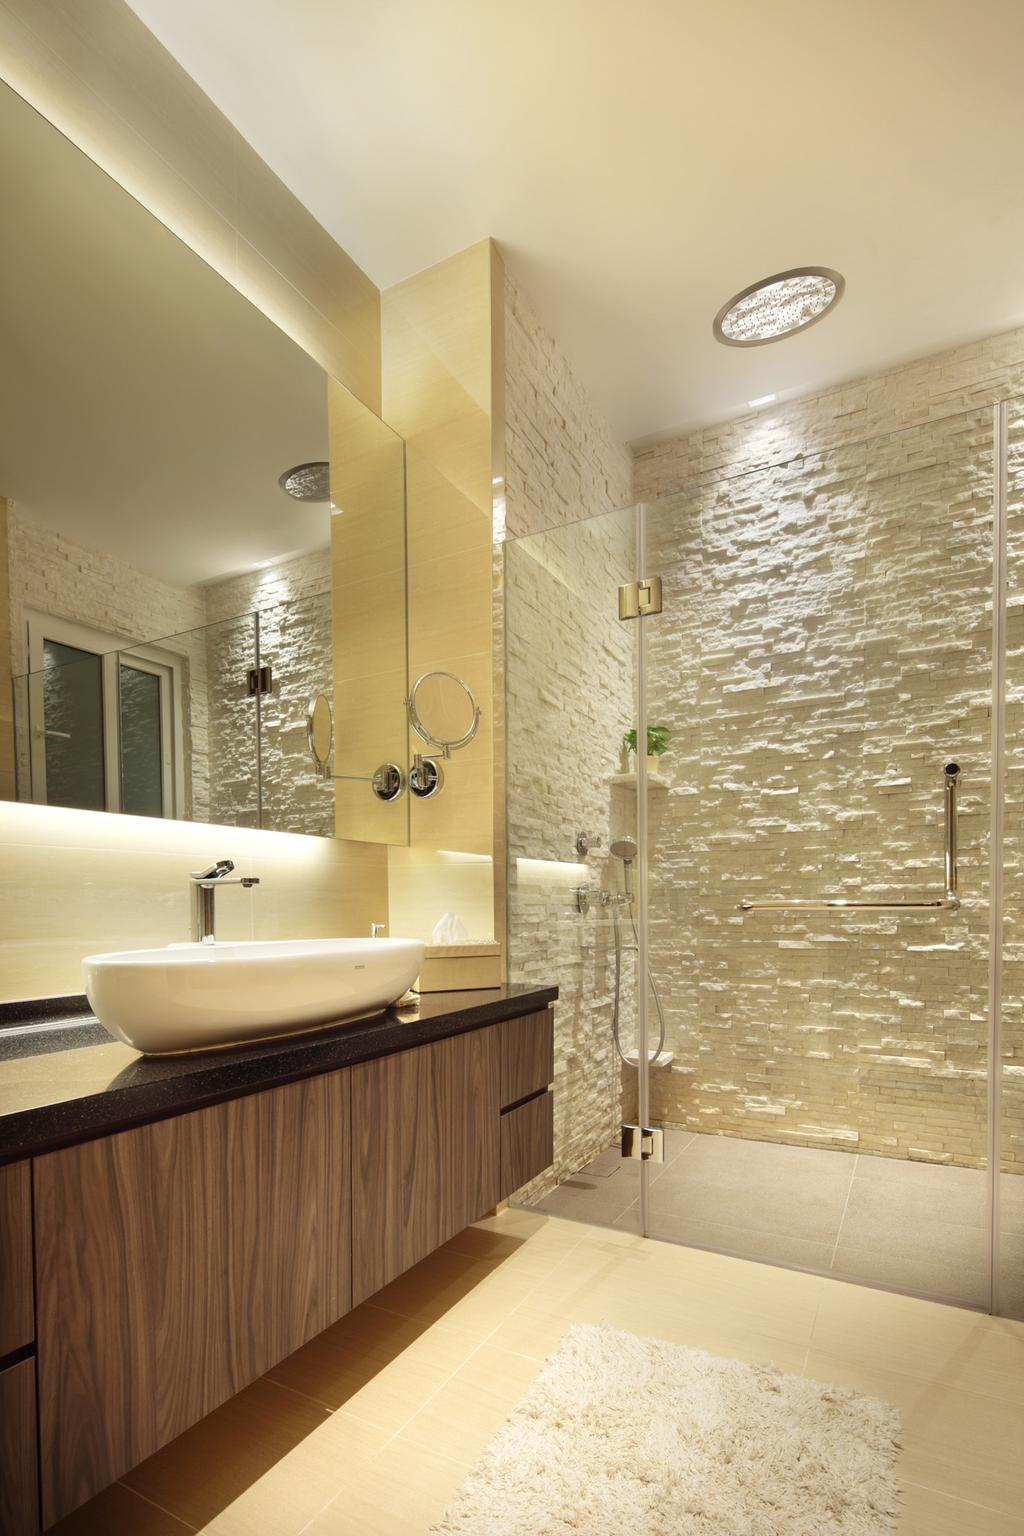 Traditional, Landed, Bathroom, 22 Sunbird Road, Interior Designer, Space Define Interior, Rug, Stone Wall, Stacco Wall, Raw, Glass Cubicle, Mirror, Concealed Lighting, Vessel Sink, Bathroom Counter, Wood Laminate, Wood, Laminate, Indoors, Interior Design, Room